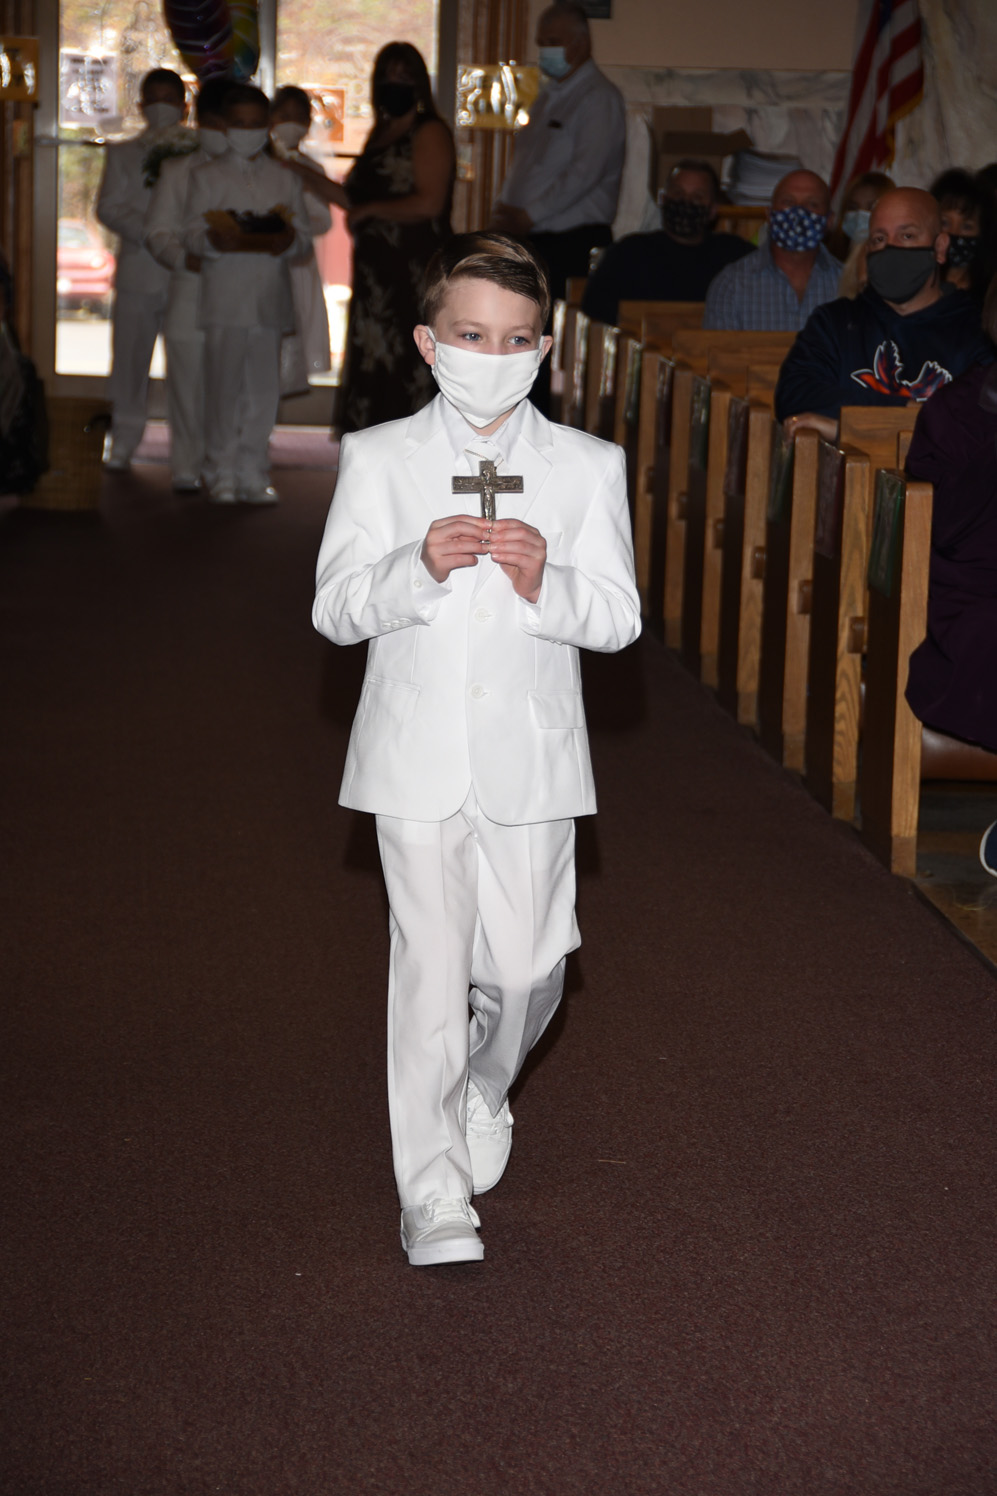 FIRST-COMMUNION-MAY-2-2021-1001001066